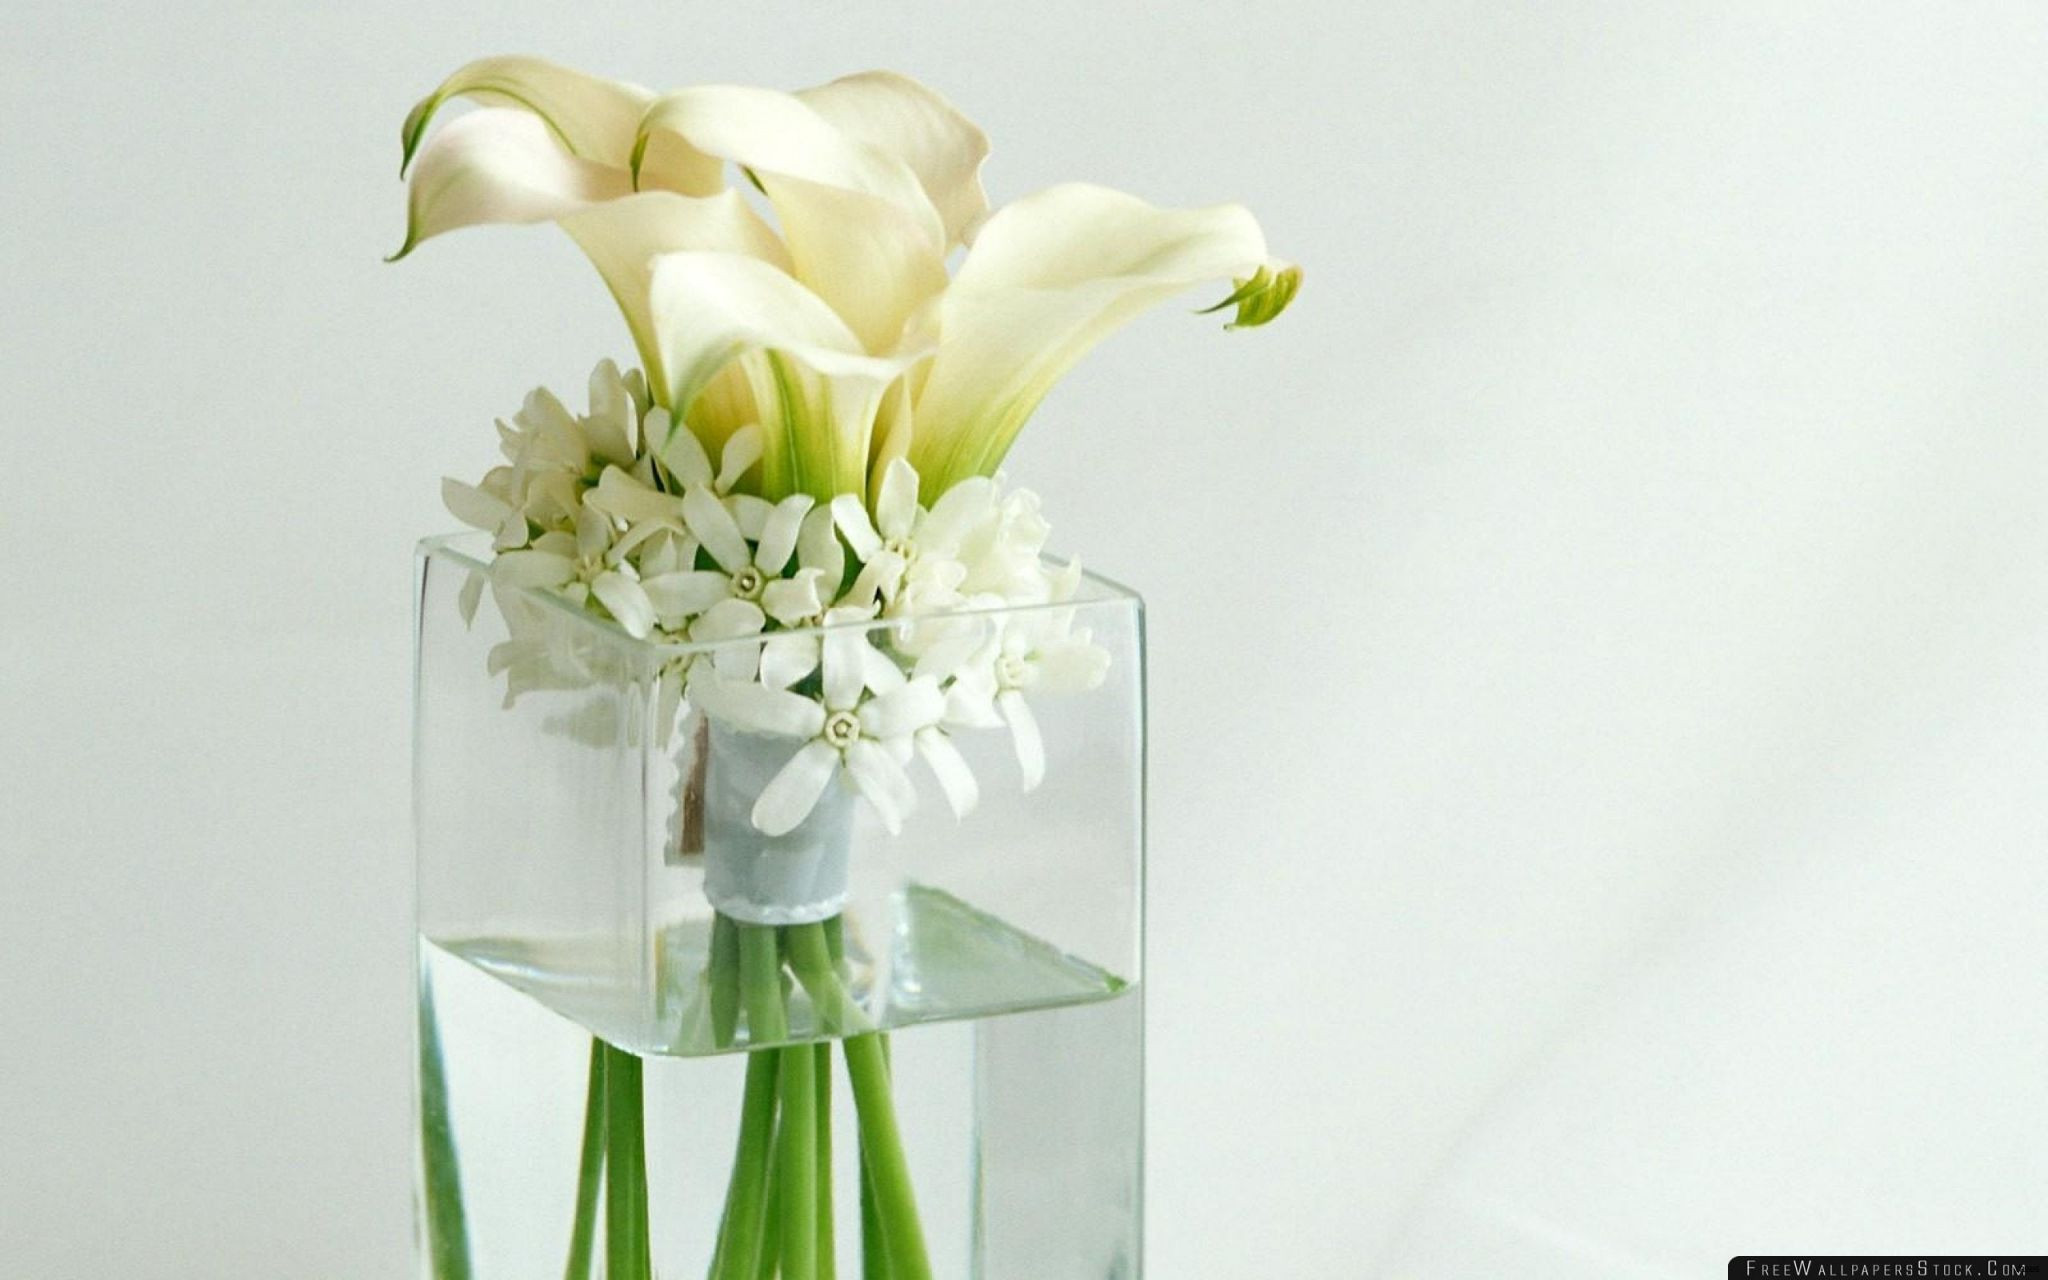 Preferred Tall Vase Centerpiece Ideas Vases Flowers In Water 0d Artificial Flowers And Fruits og0